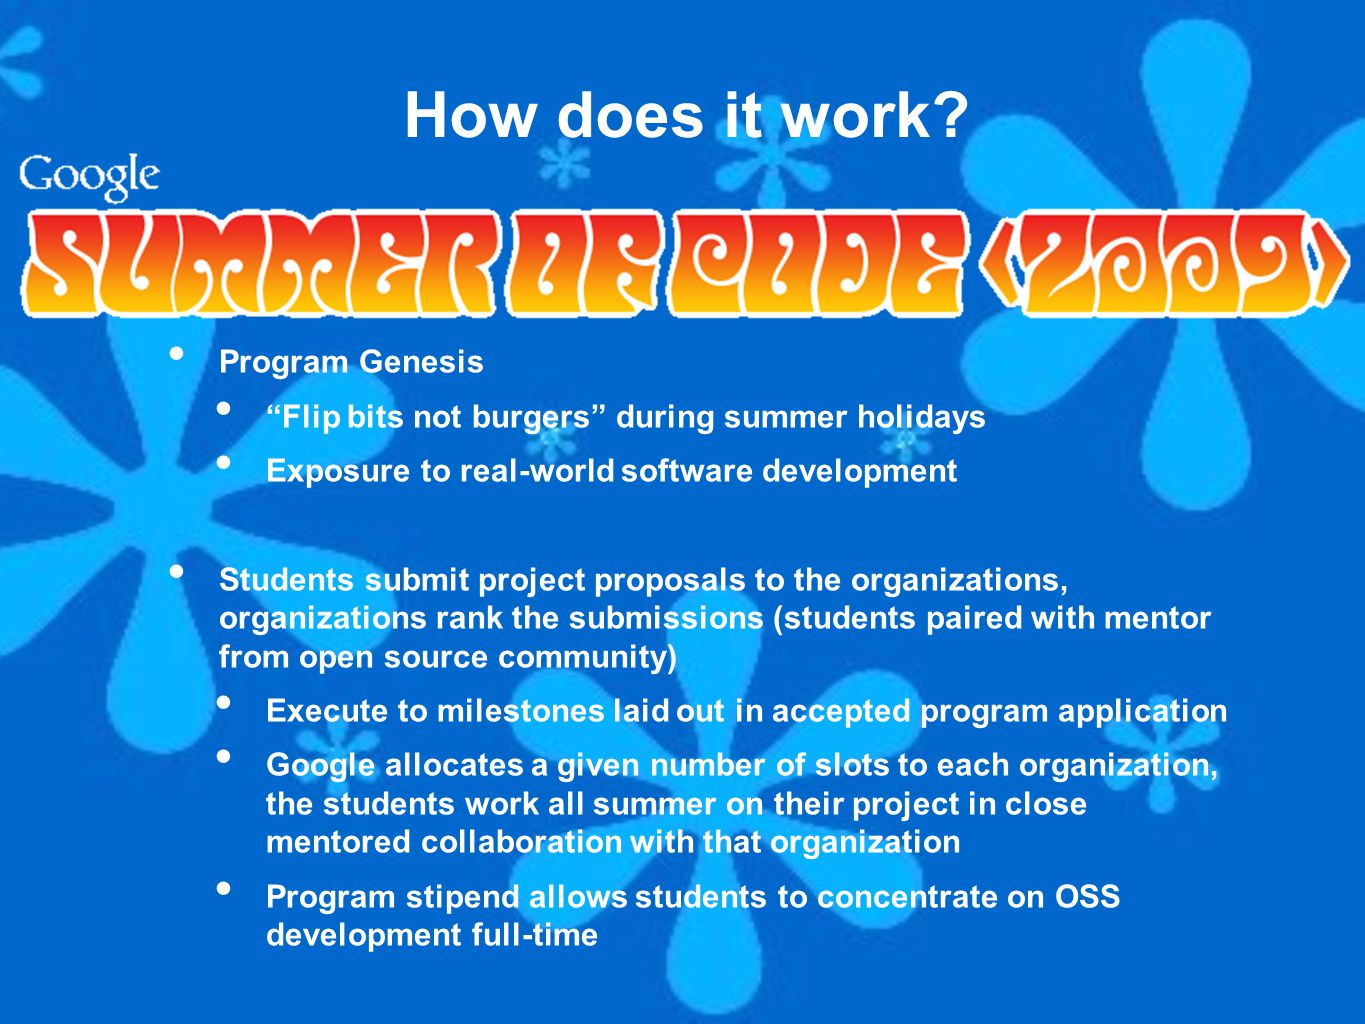 Program Genesis Flip bits not burgers during summer holidays Exposure to real-world software development Students submit project proposals to the organizations, organizations rank the submissions (students paired with mentor from open source community) Execute to milestones laid out in accepted program application Google allocates a given number of slots to each organization, the students work all summer on their project in close mentored collaboration with that organization Program stipend allows students to concentrate on OSS development full-time How does it work